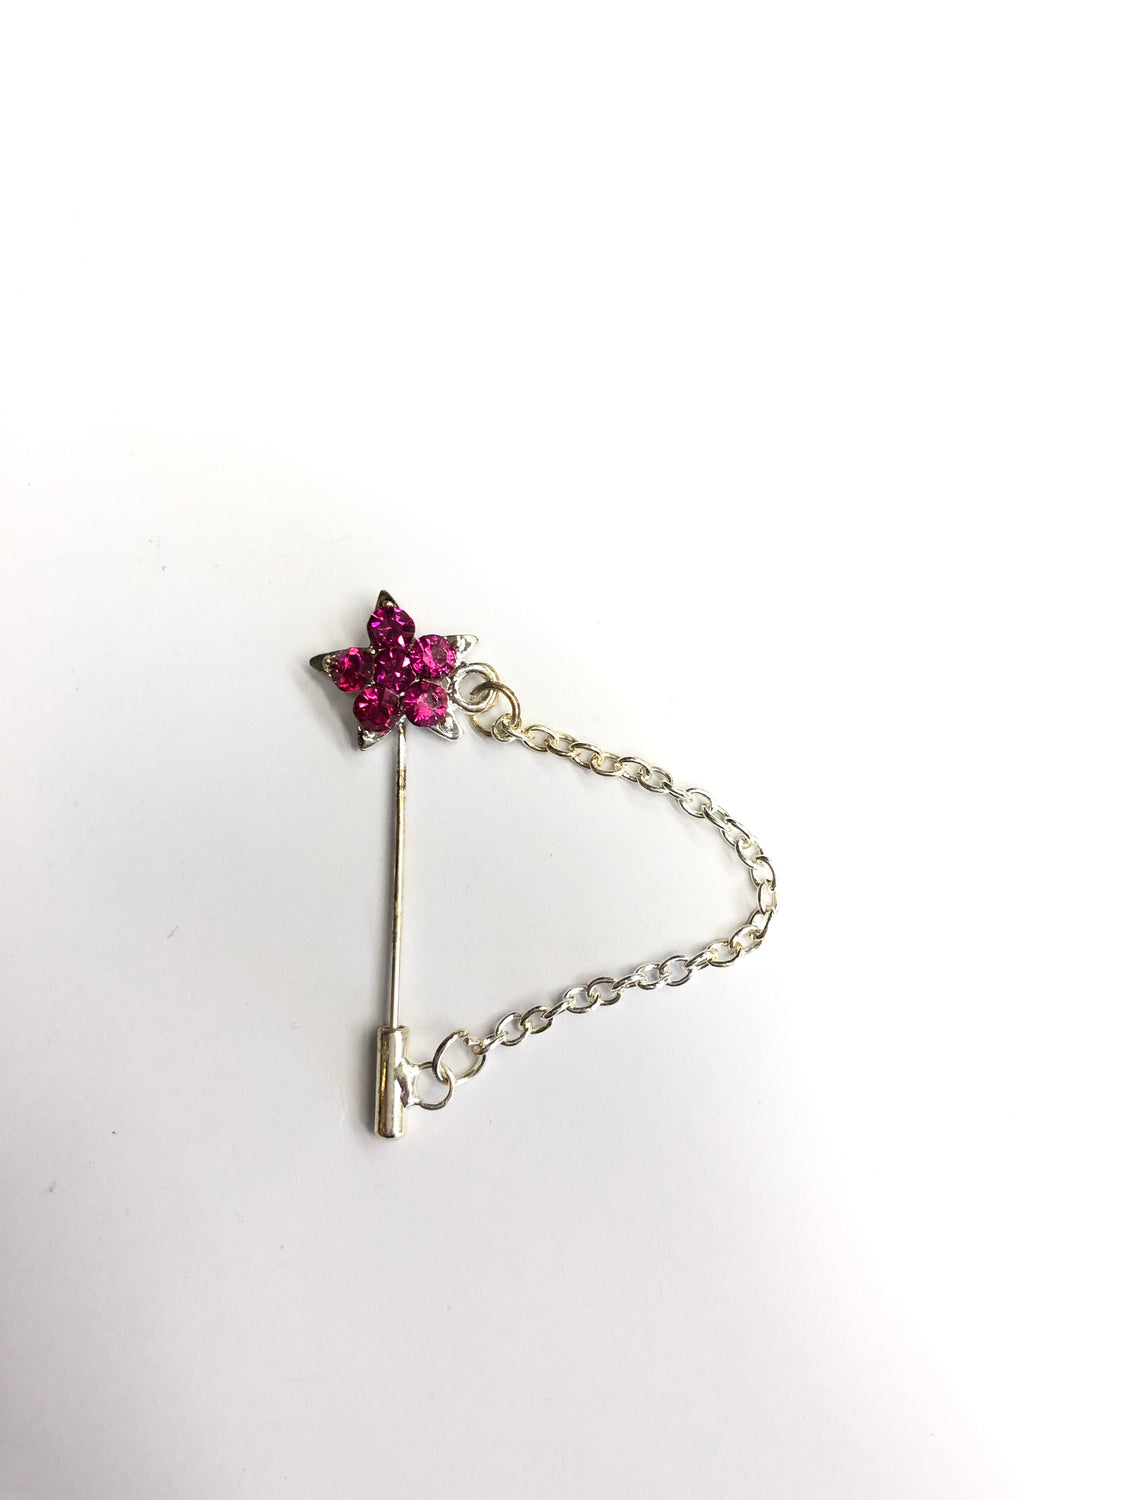 silver clasp pin with hot pink star jewel and a chain